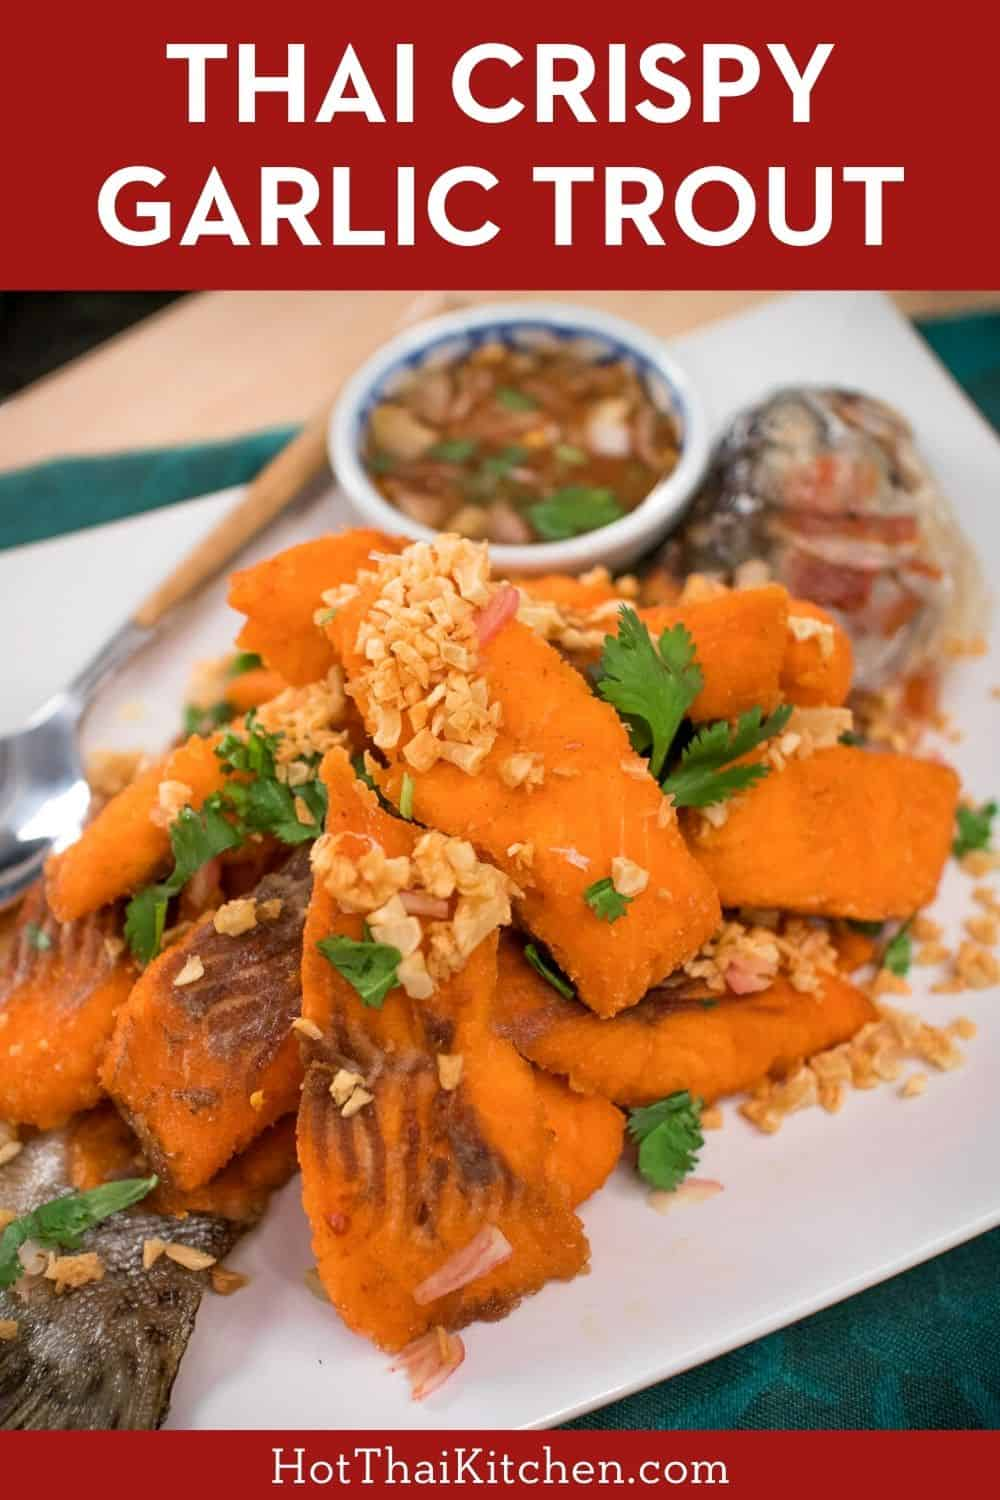 This authentic Thai preparation works with any fish. Crispy fried garlic with crispy fried fish, served with a tart, fresh, and spicy sauce. It's to die for! #thairecipe #fishrecipe #troutrecipe